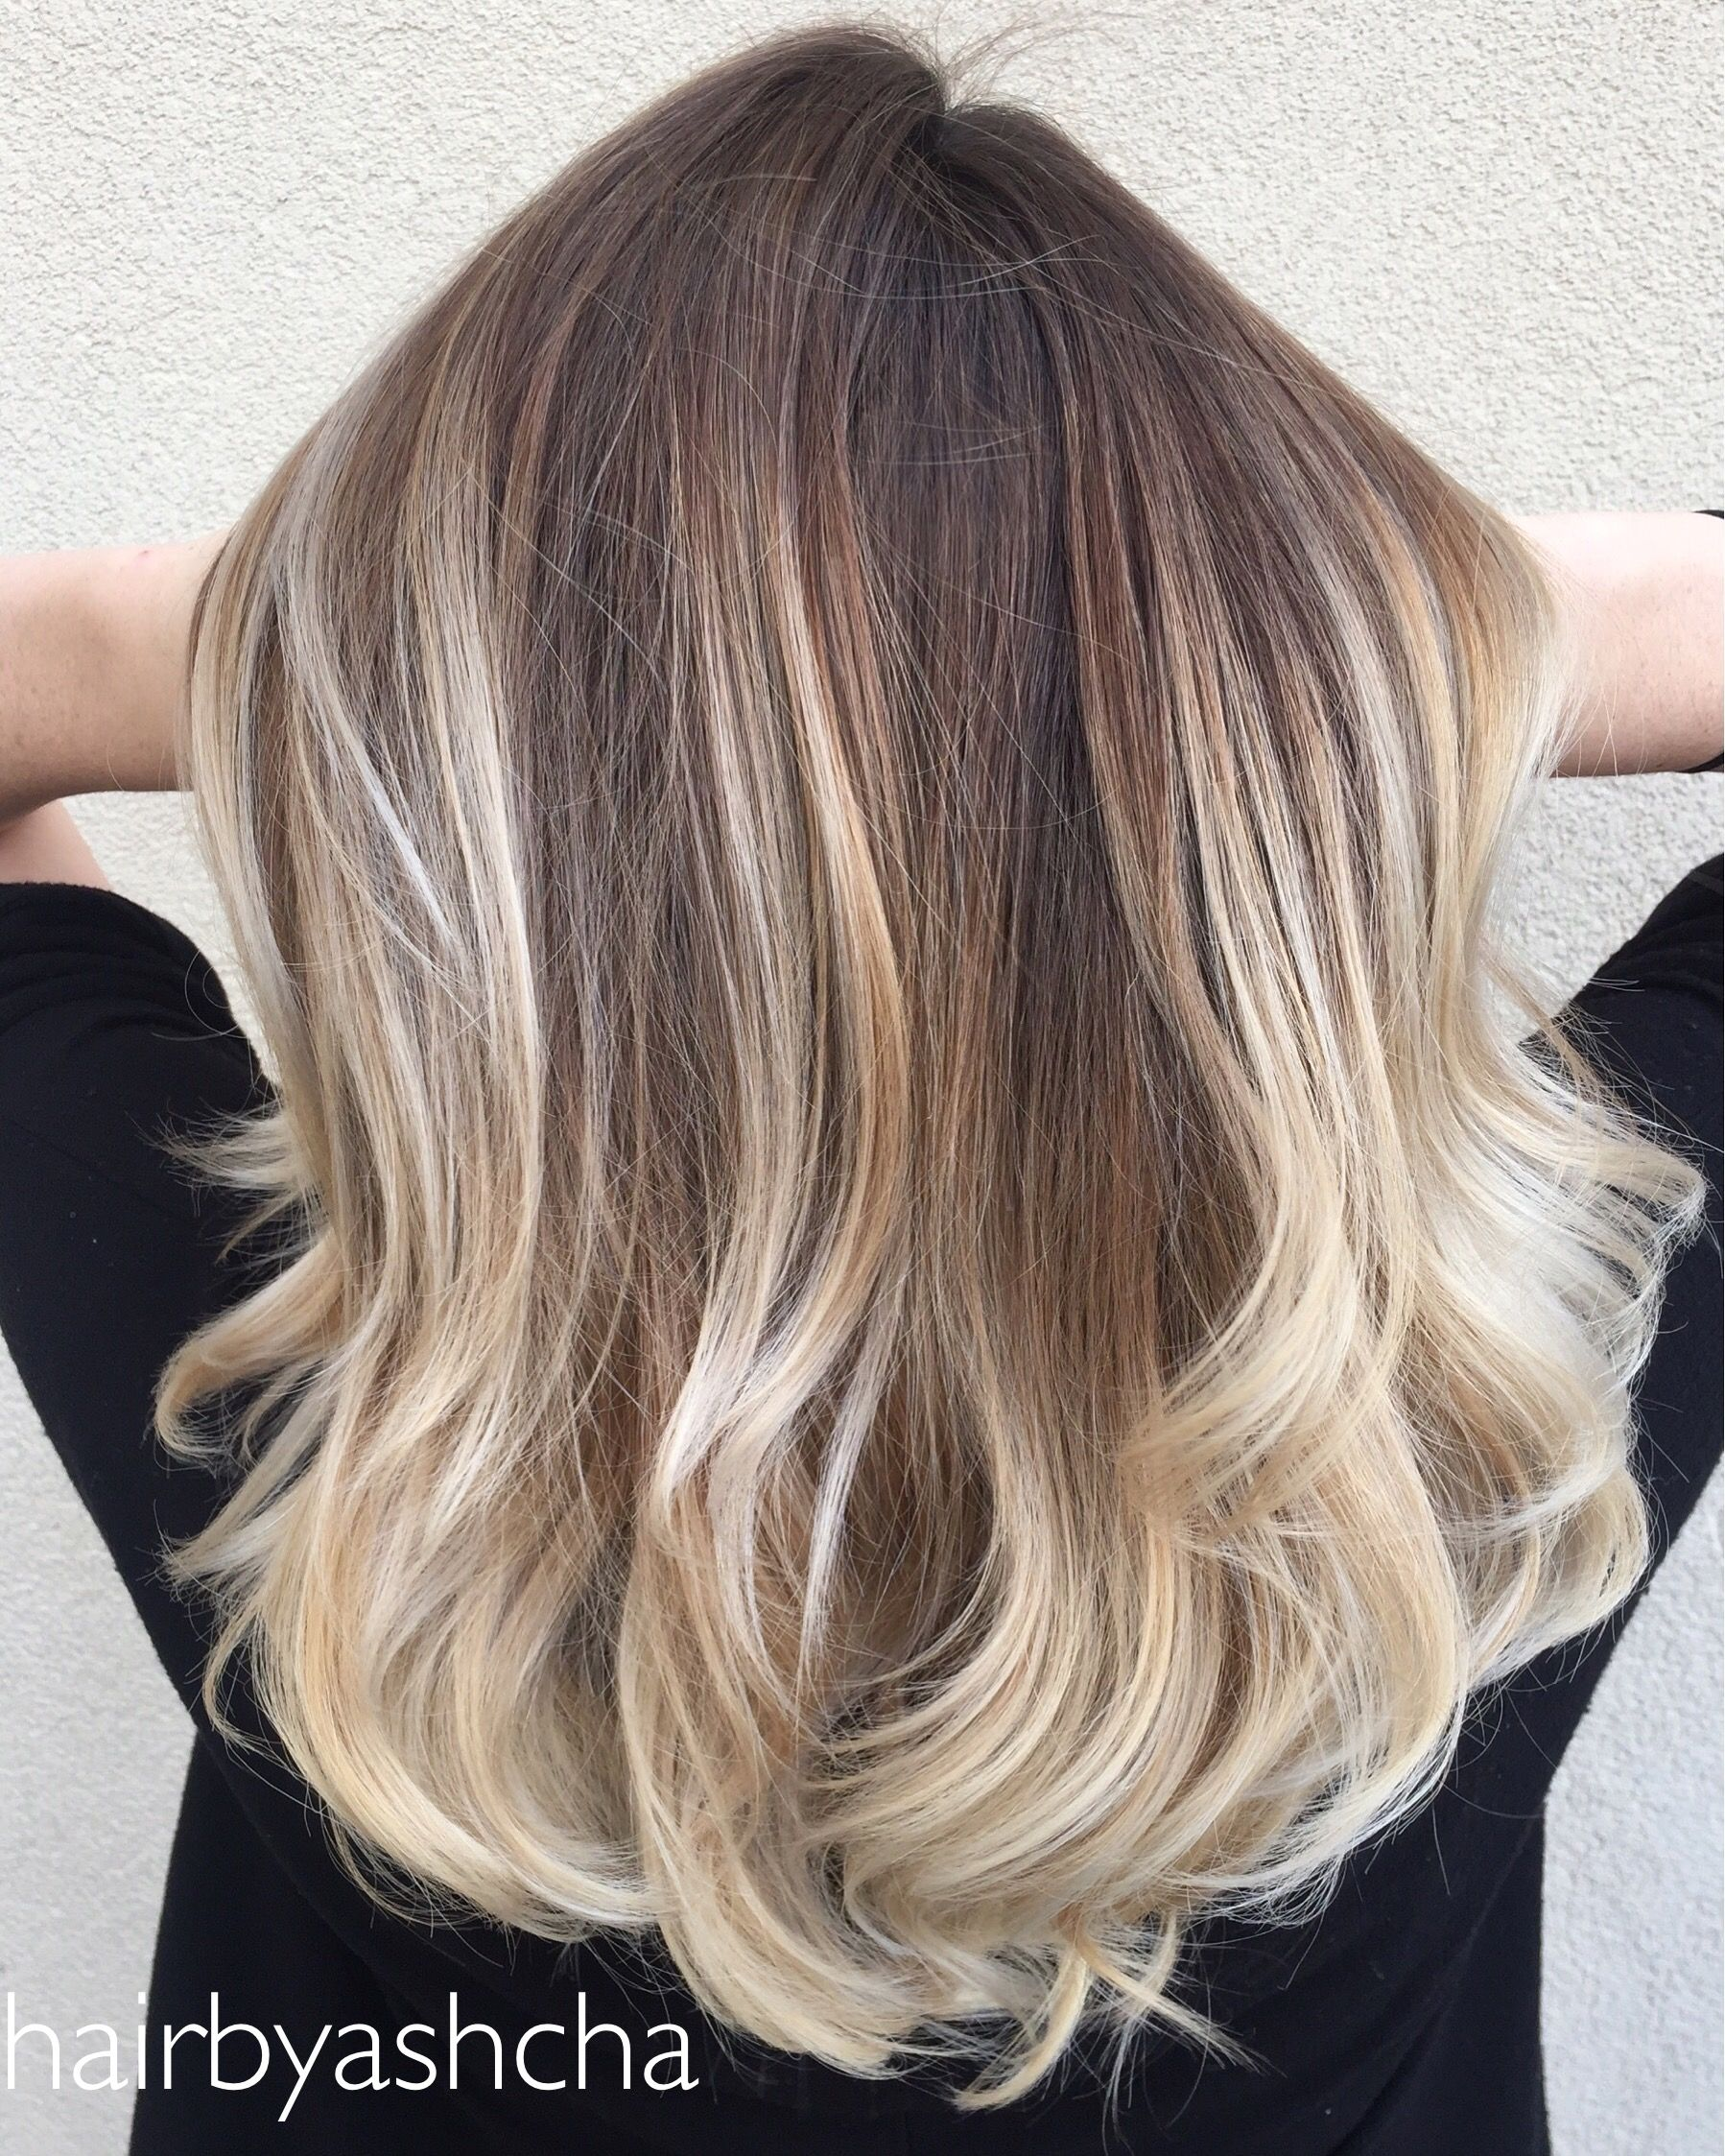 beige blonde balayage balayage beigeblonde hair color cut pinterest blonde balayage. Black Bedroom Furniture Sets. Home Design Ideas